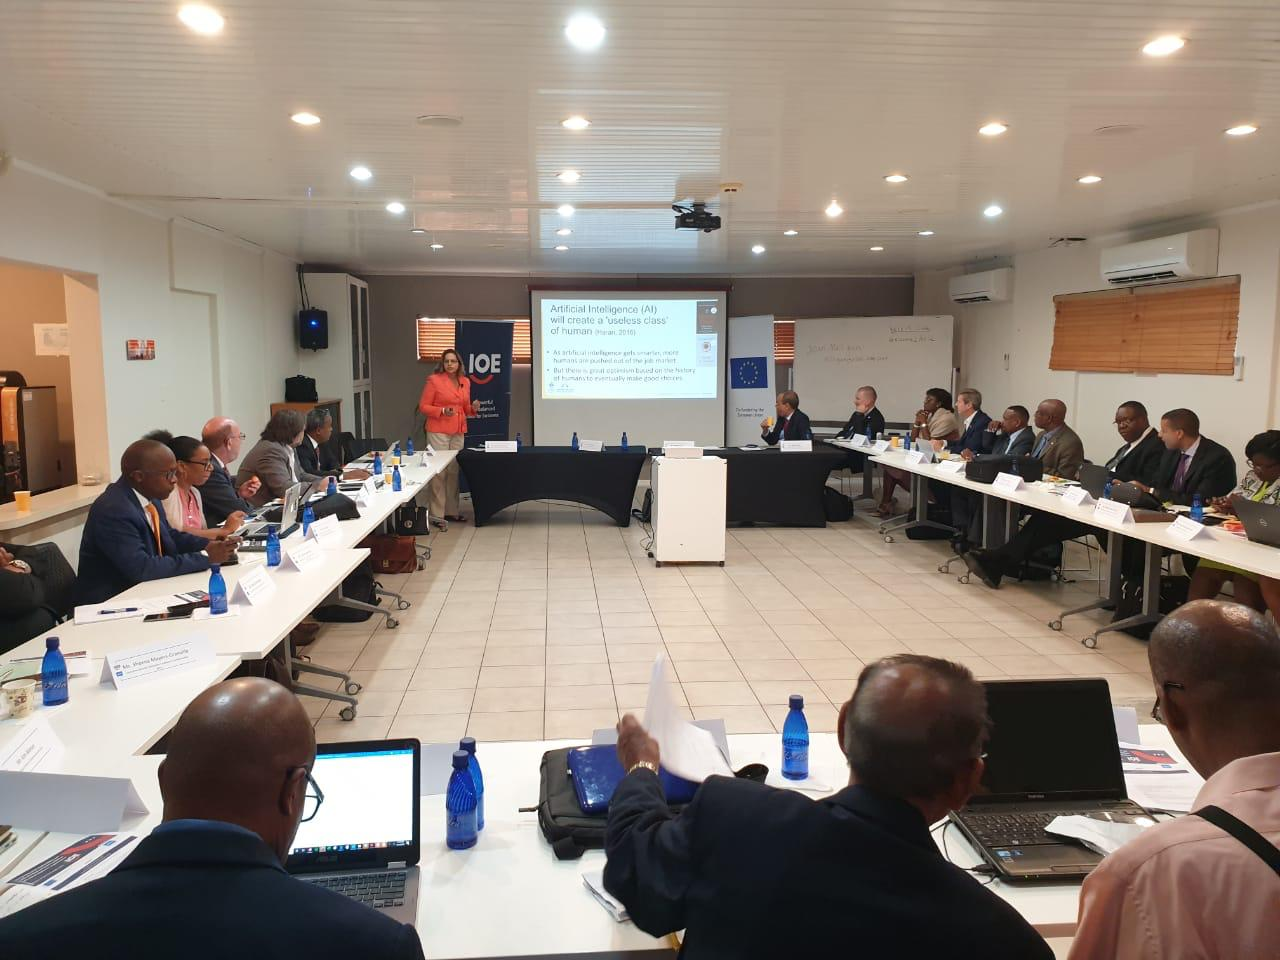 Over 25 Employer Organisation Representatives Met to Discuss Youth Employability and Skill Development at International Workshop in Aruba